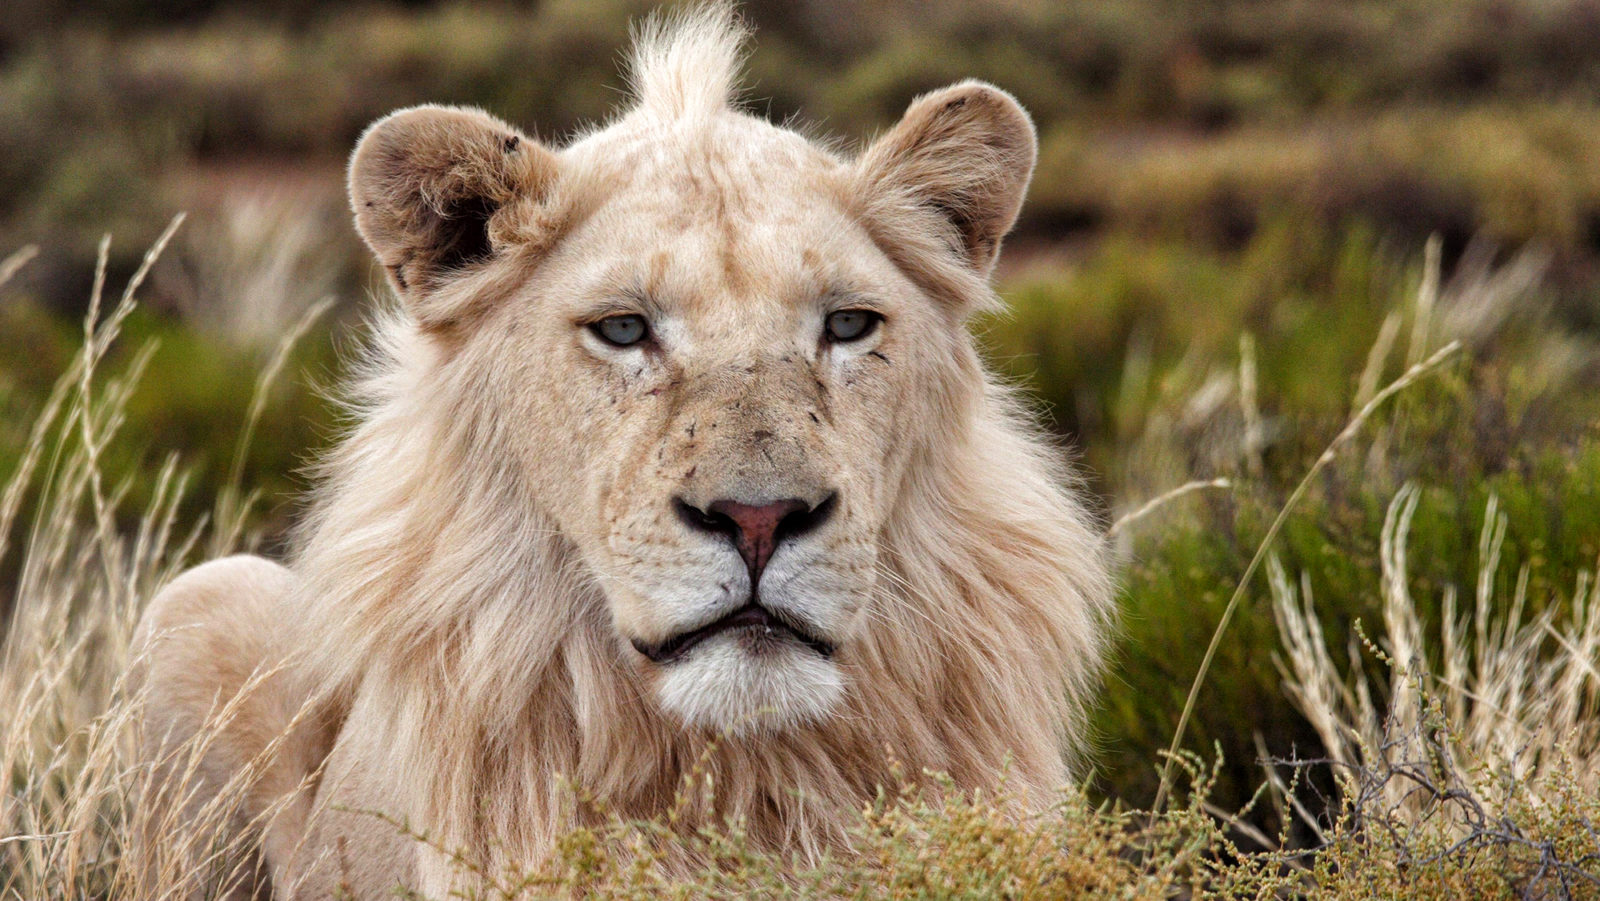 Trophy Hunting Part One: The nasty colonial sport of